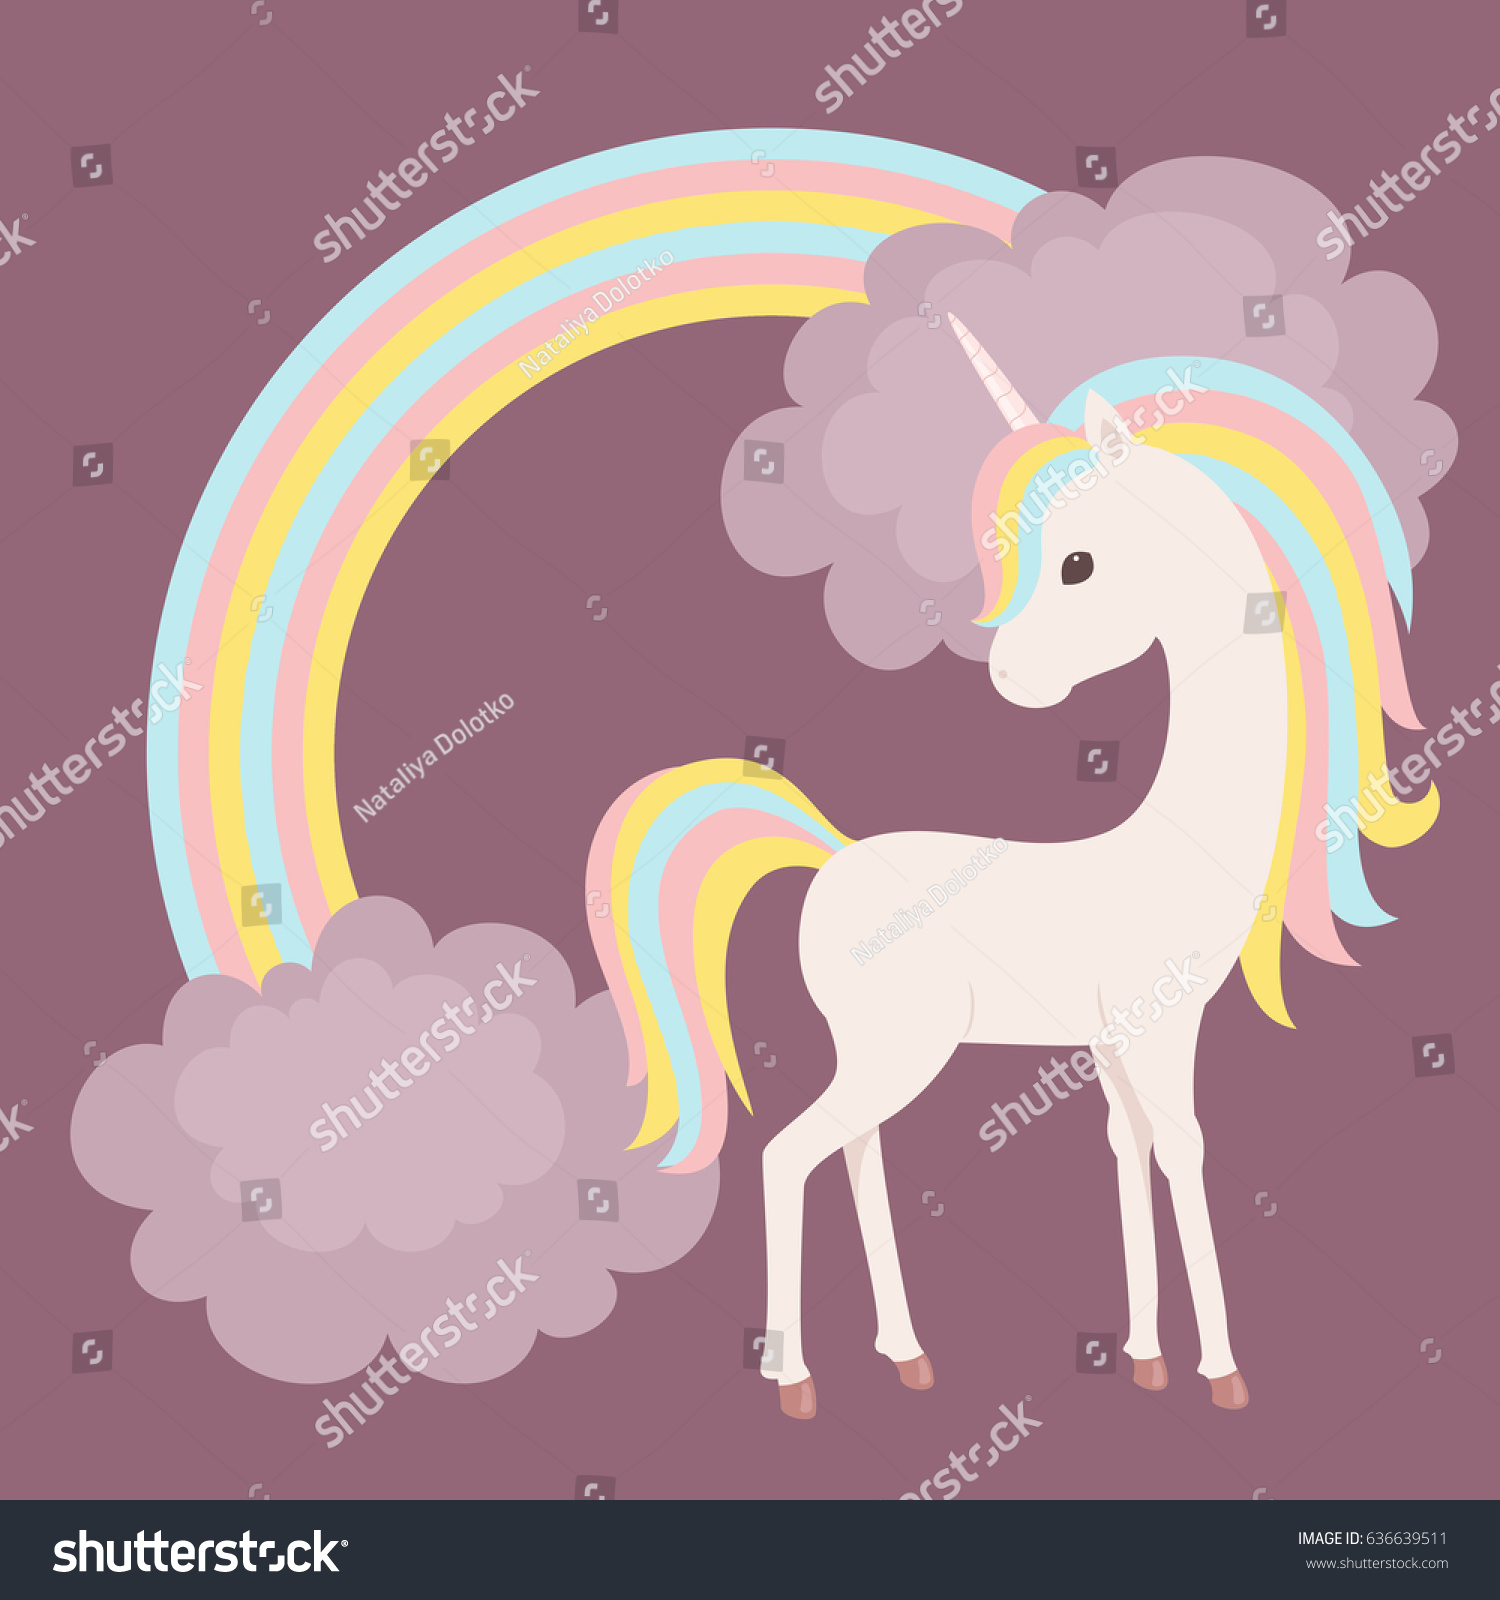 Colorful Unicorn Staying Close Rainbow Clouds Stock Vector HD ...